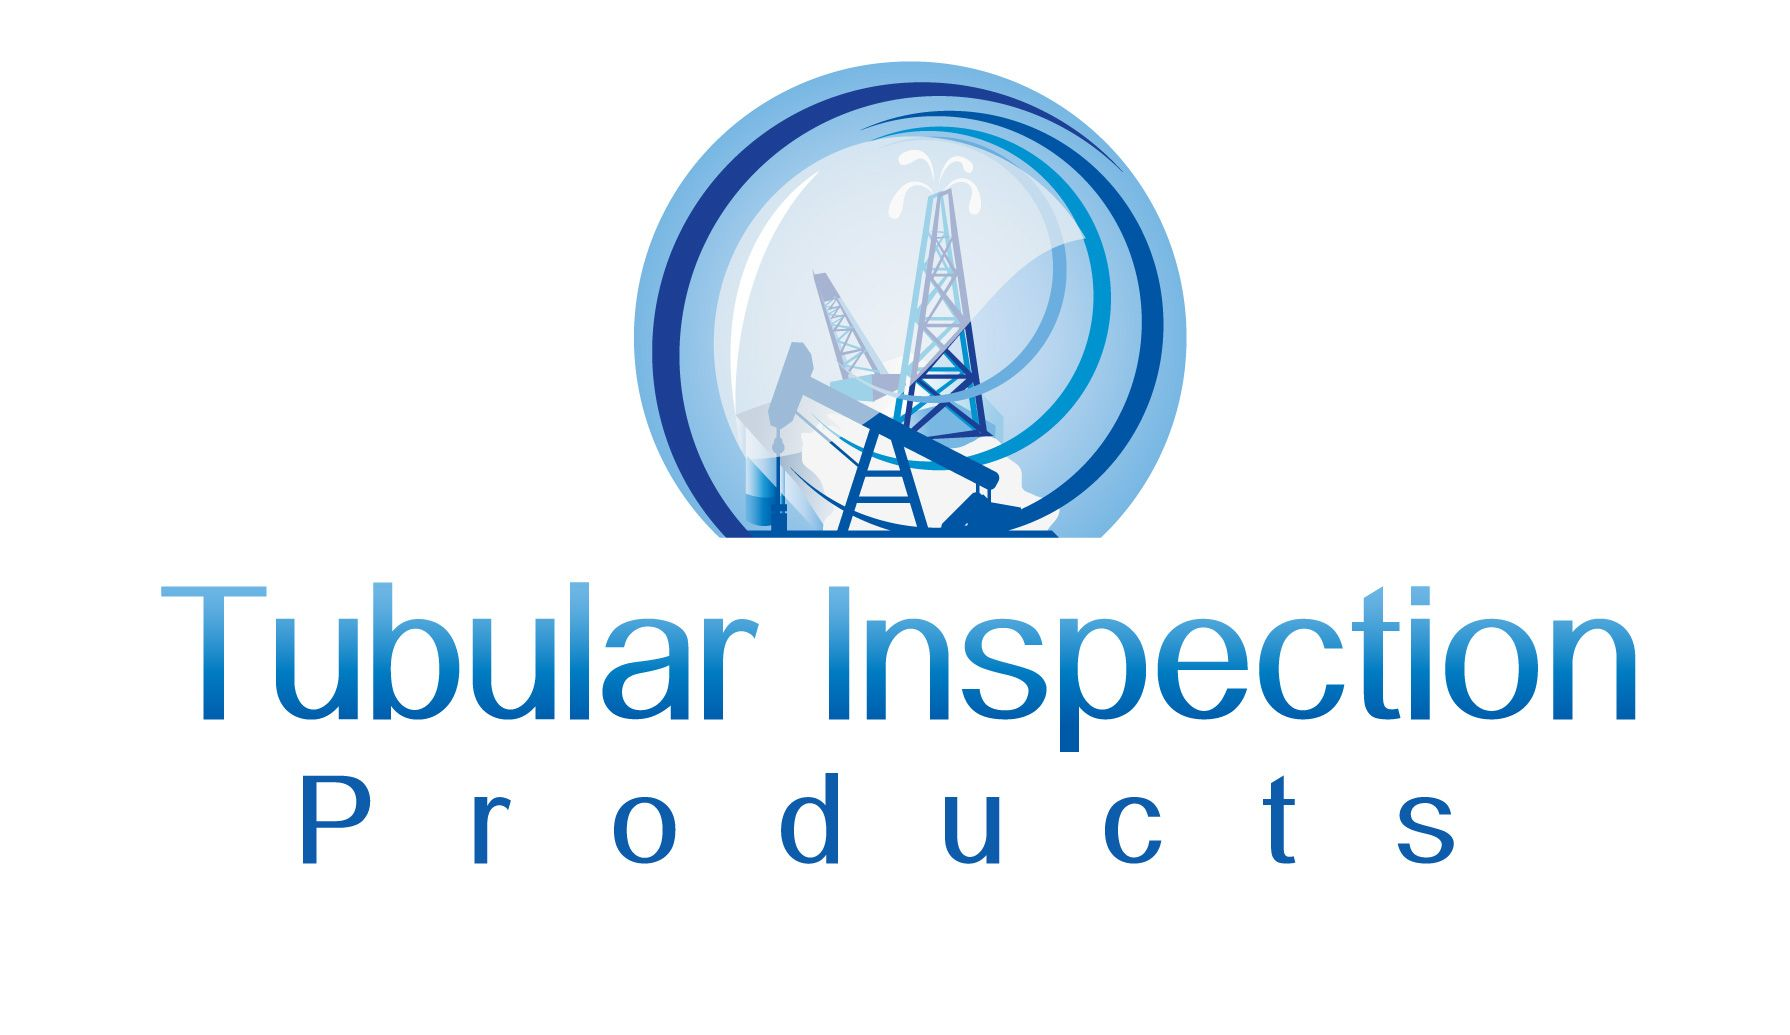 Tubular Inspection Products.jpg